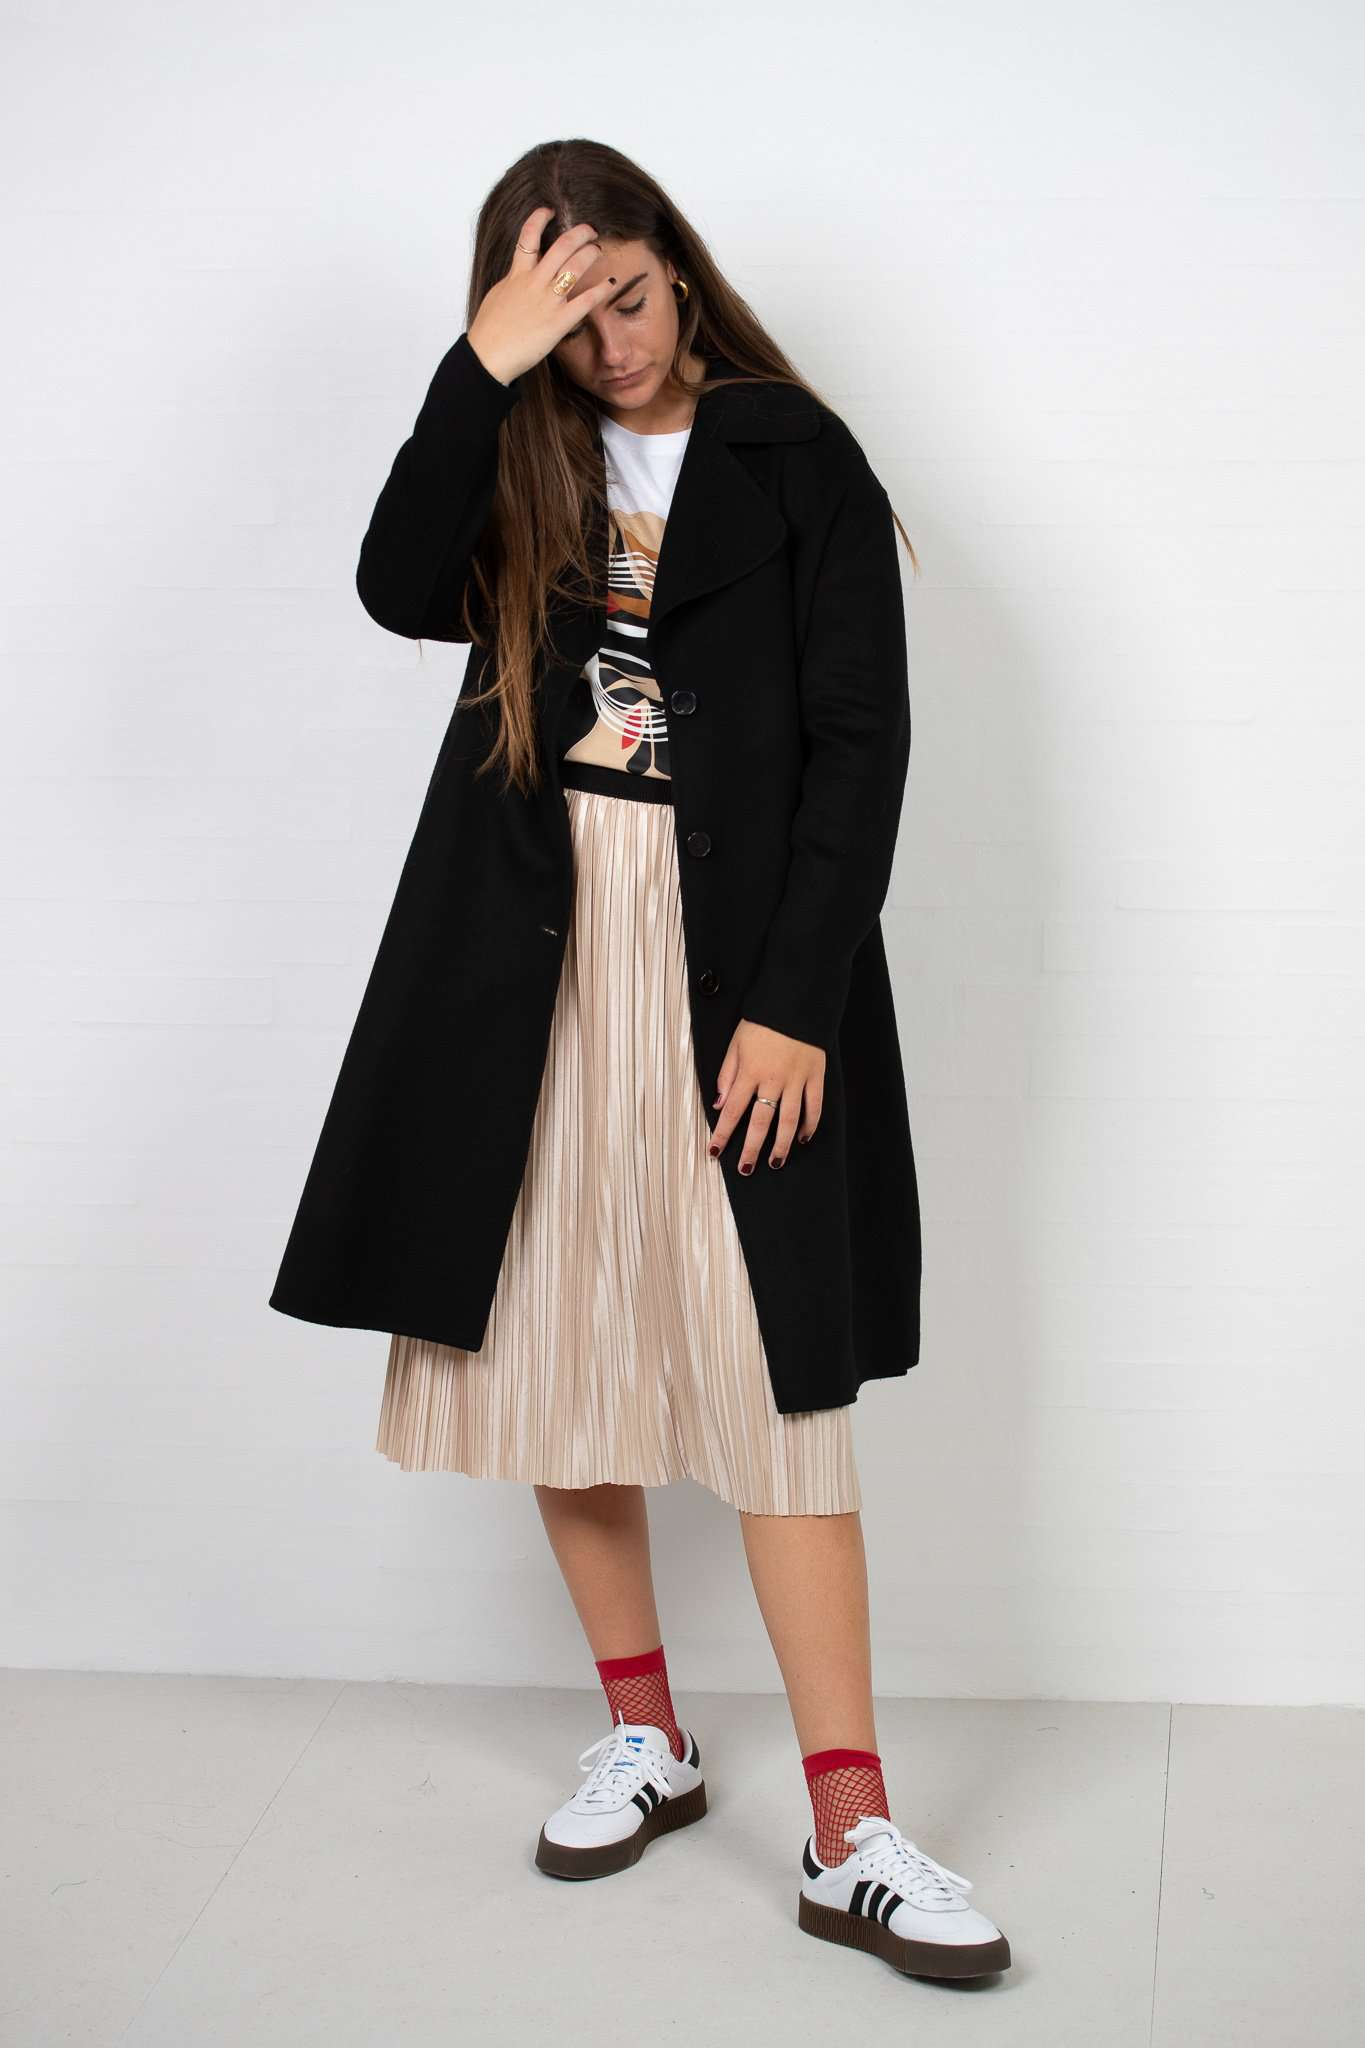 Image of   Oda Ida Coat - Sort - Sort M